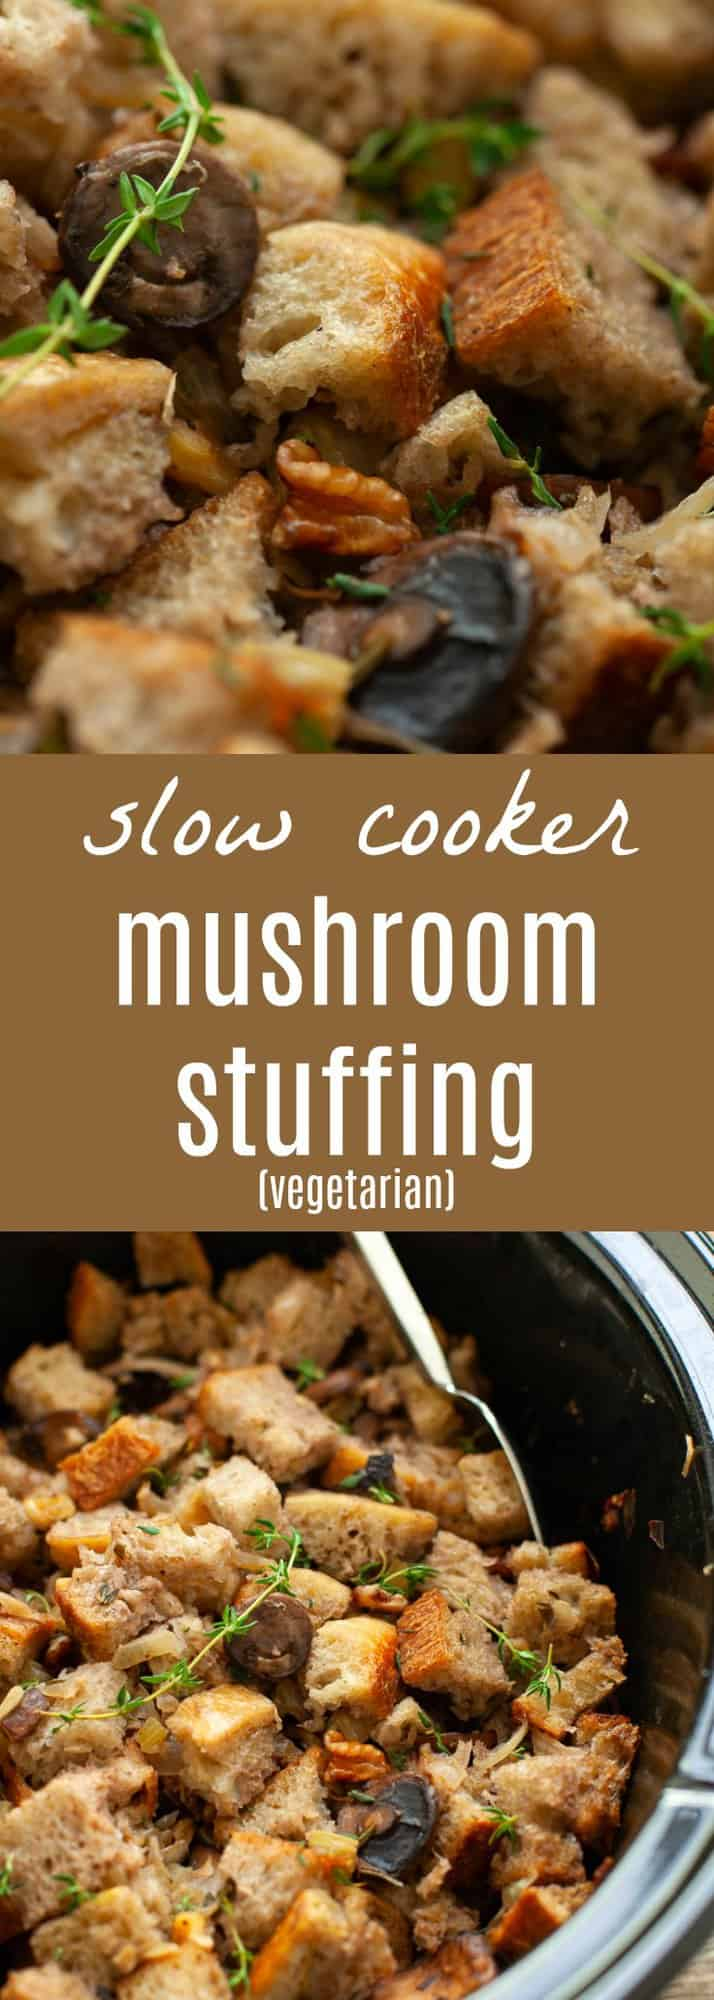 A delicious, savory, umami-filled side dish, this slow cooker mushroom stuffing will not take up any oven space on Thanksgiving! #thanksgiving #stuffing #mushroom #vegetarian